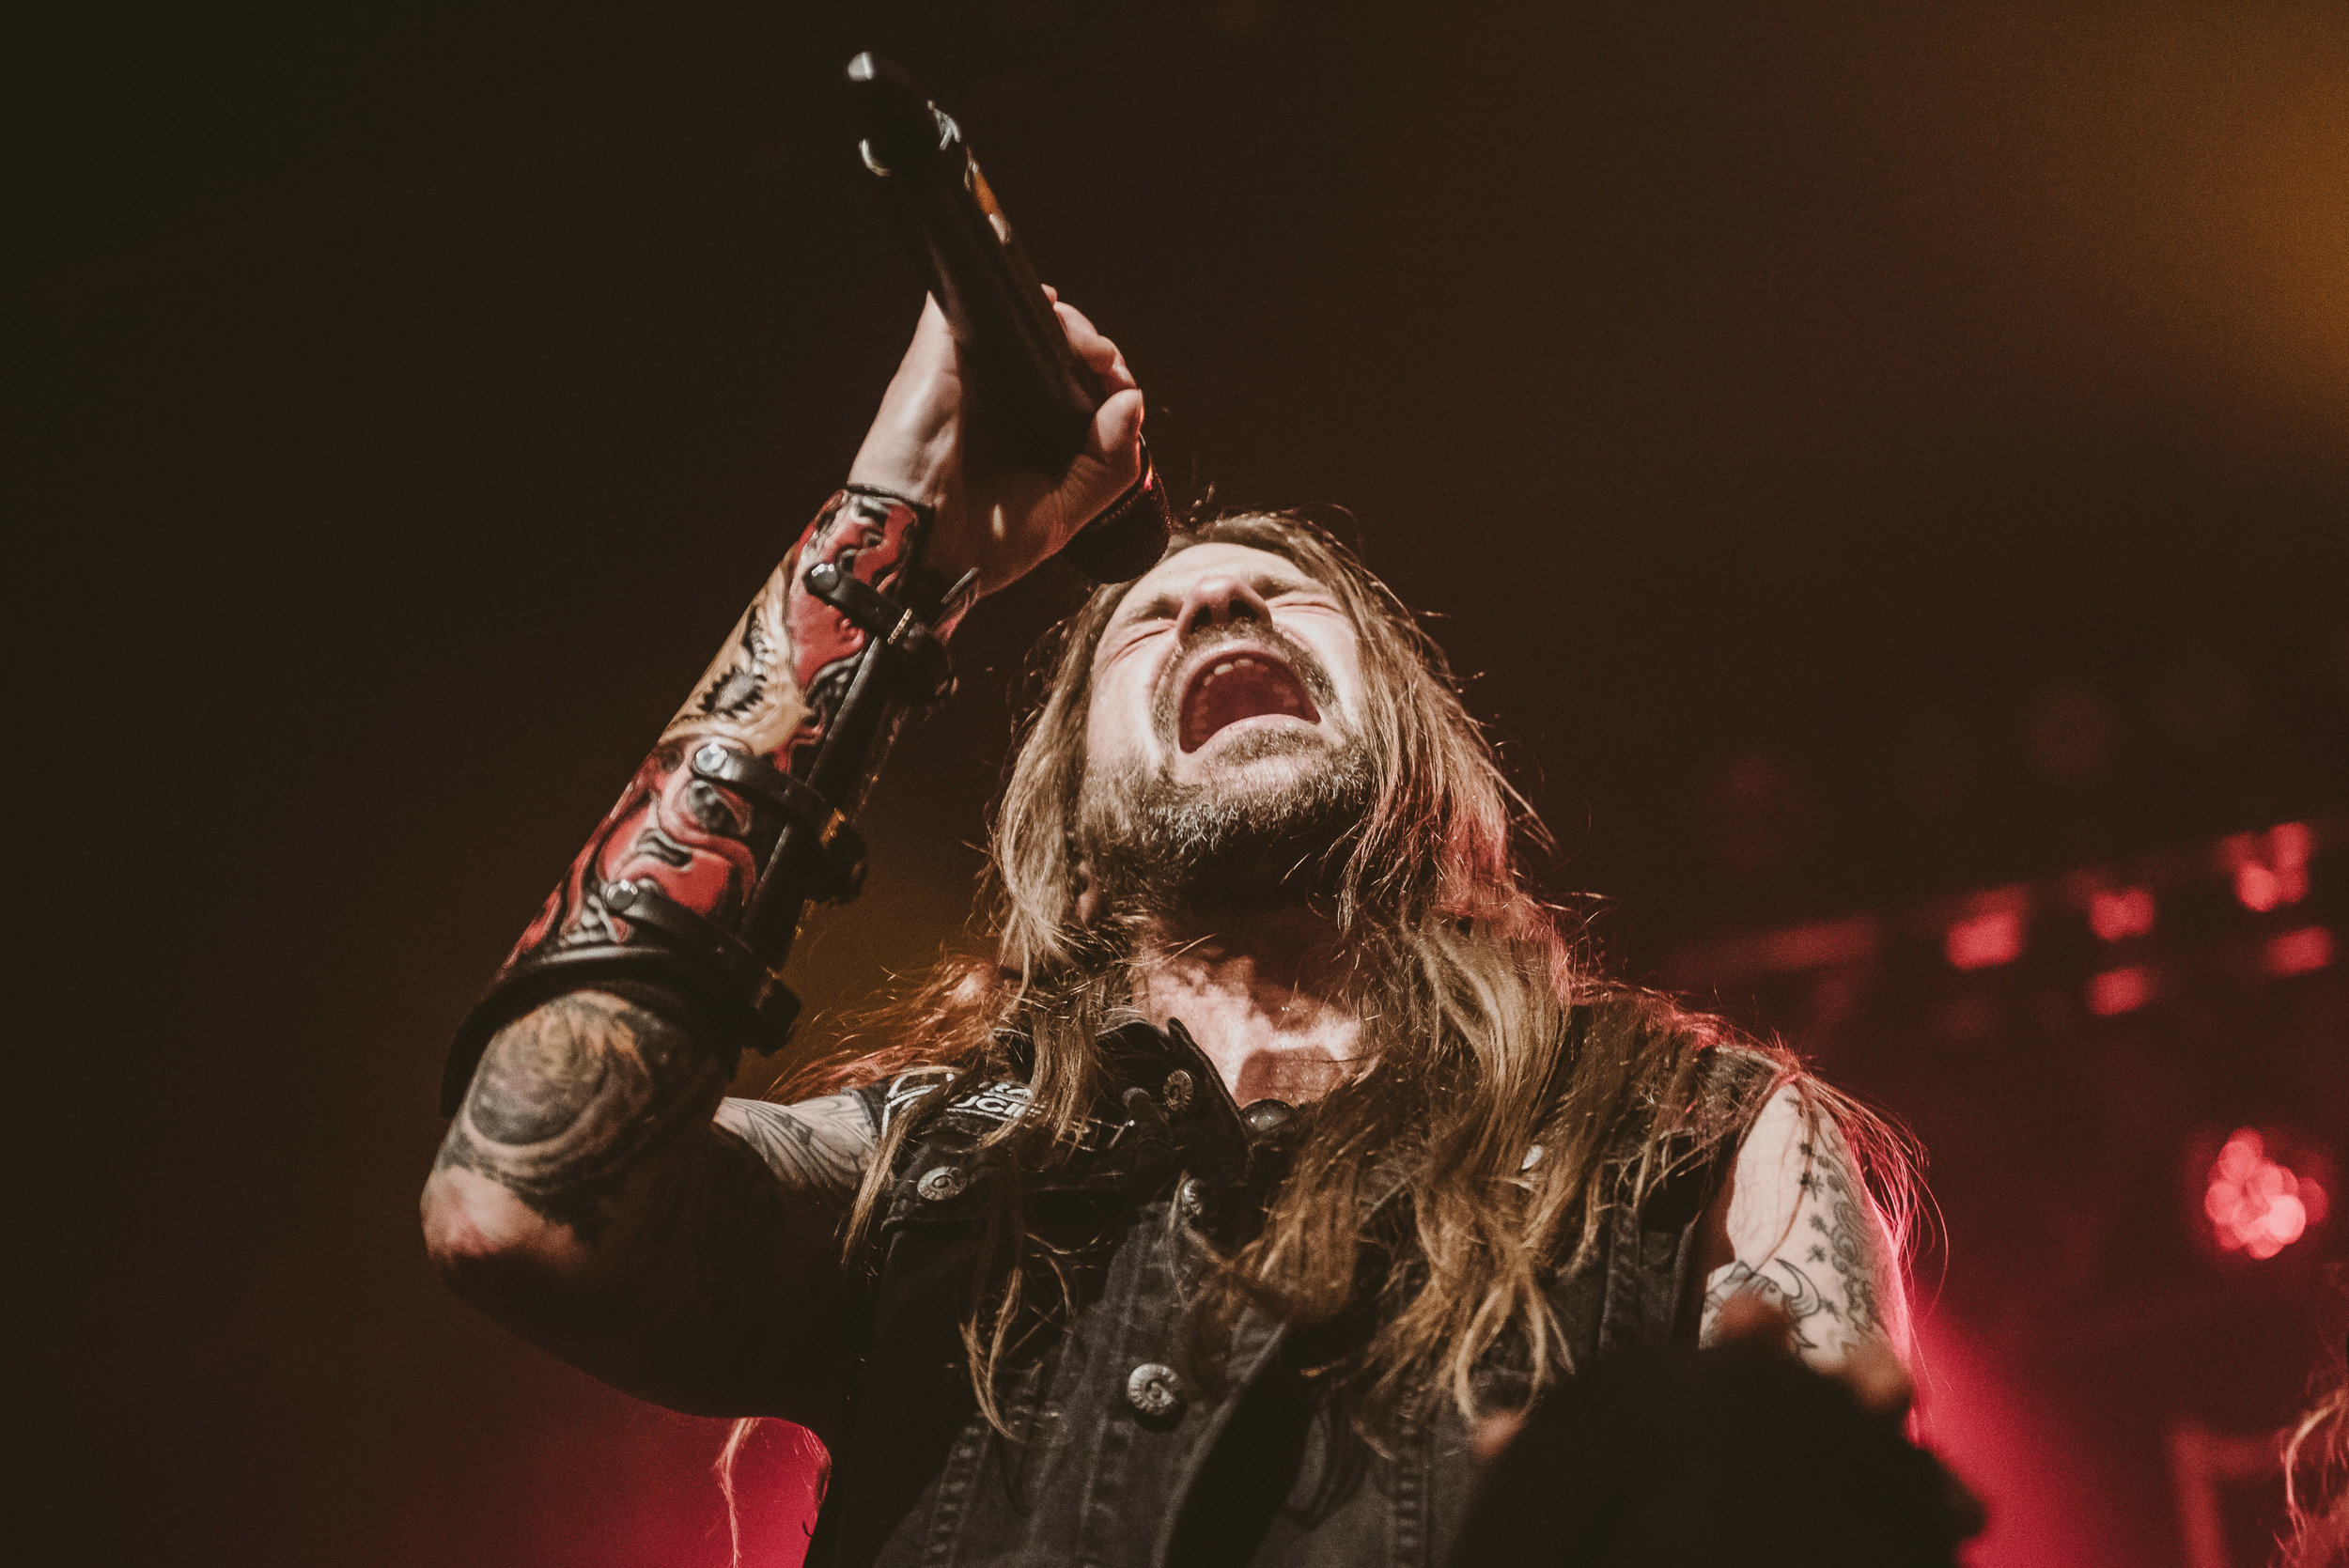 1_Iced_Earth-Rickshaw_Theatre-Timothy_Nguyen-20180304 (7 of 20).jpg